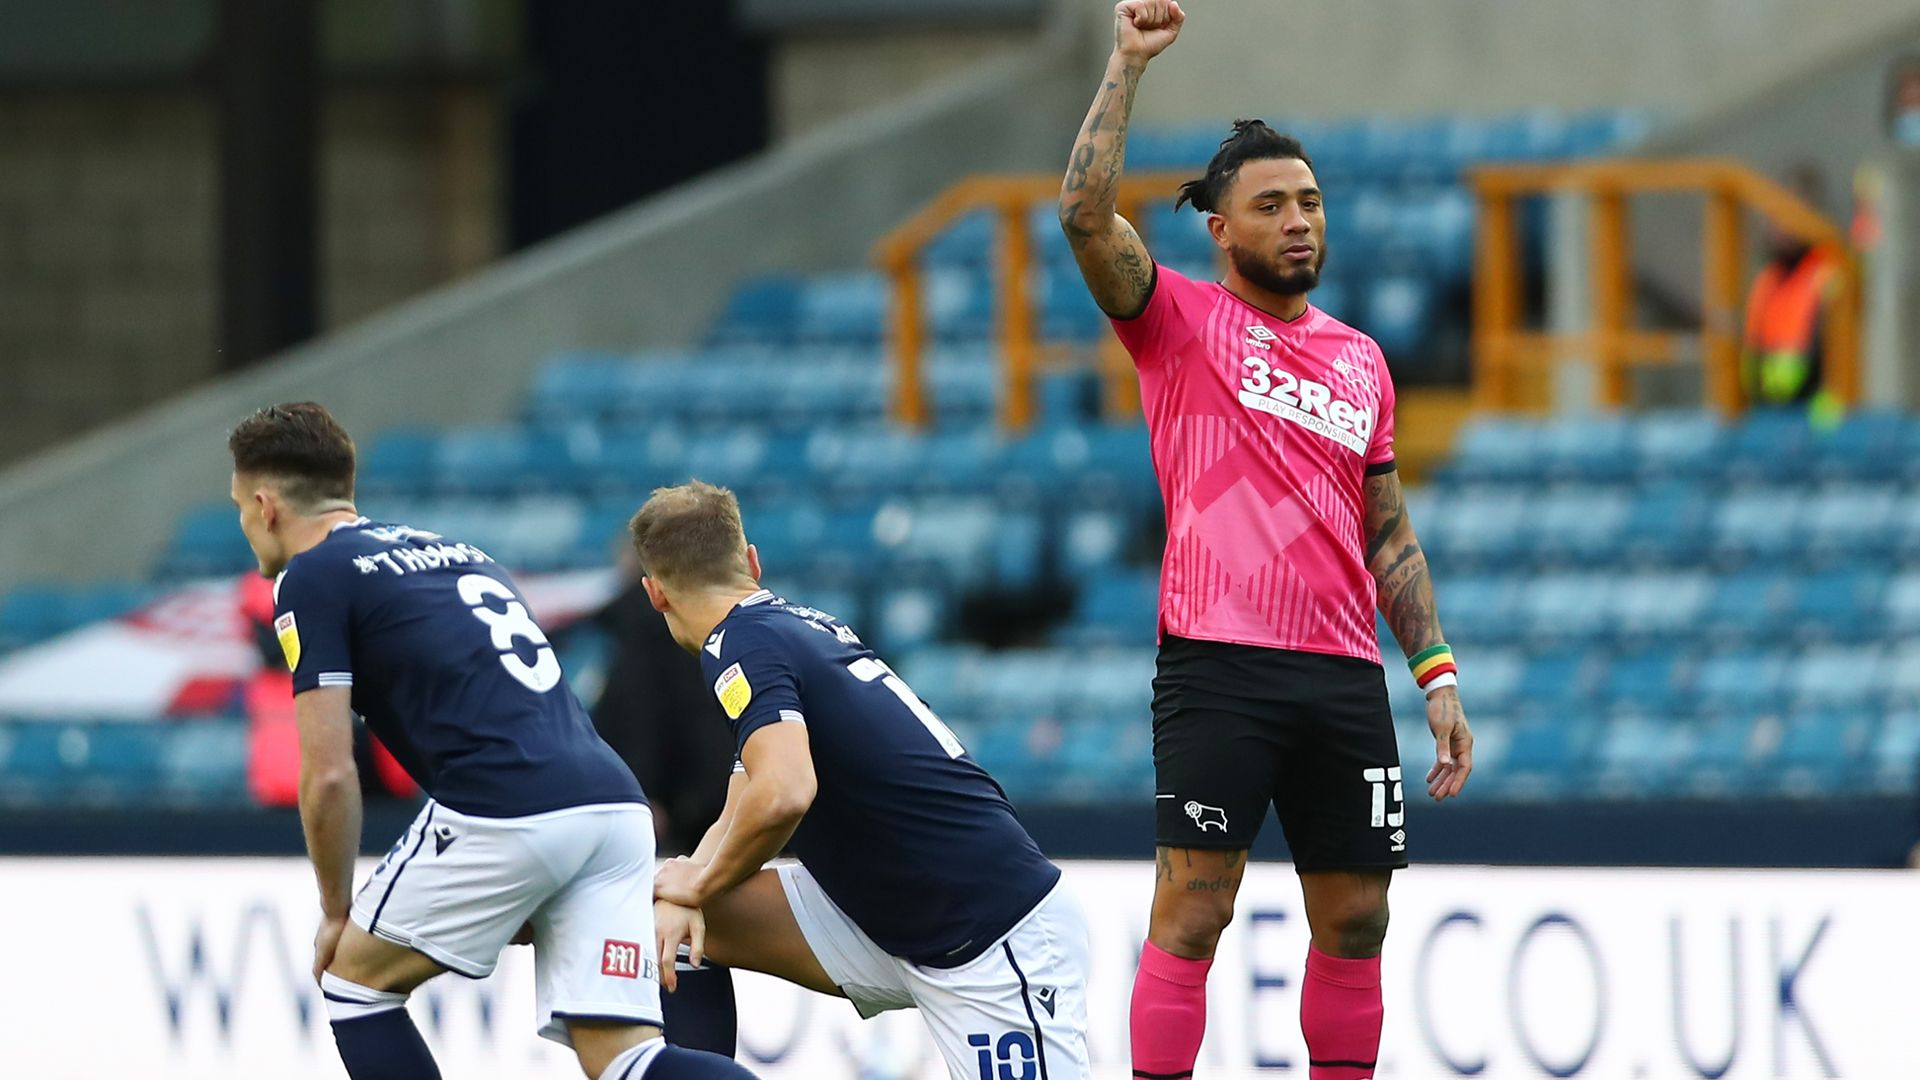 Millwall 'dismayed and saddened' as fans boo players taking a knee